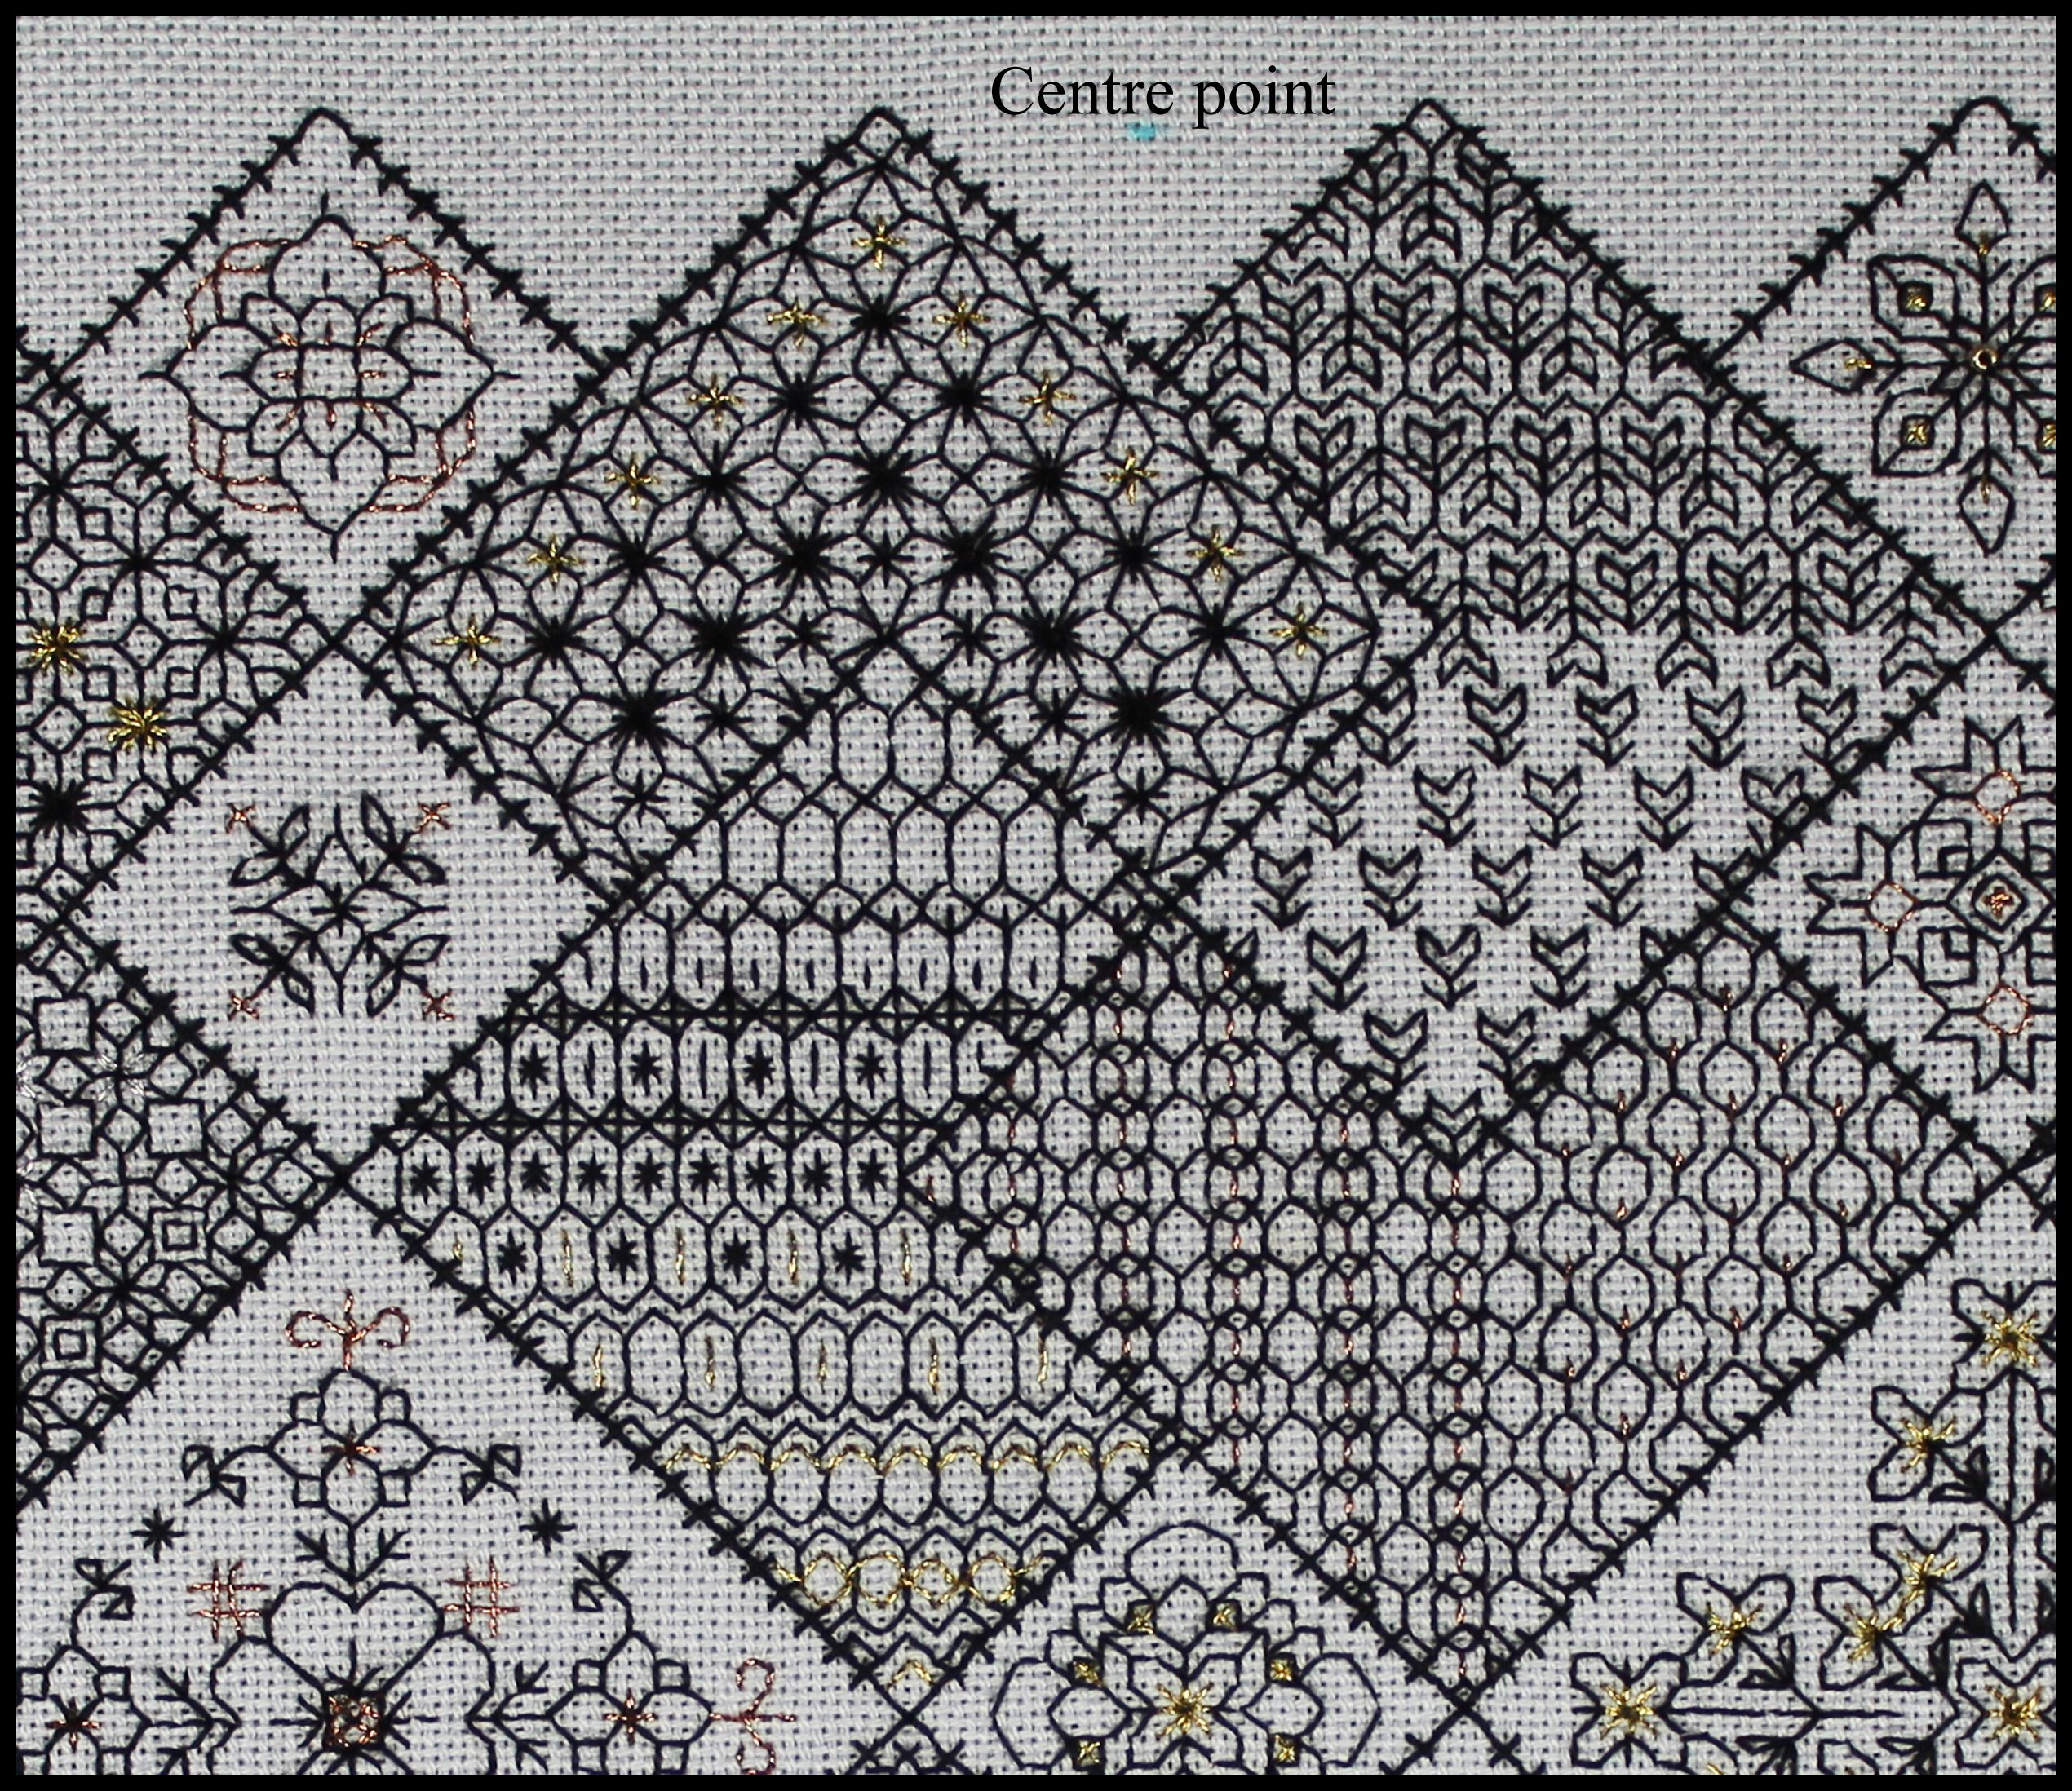 Save the stitches block 2 embroidered download the free pdf from blackwork patterns save the stitches block 2 embroidered download the free pdf from blackworkjourney bankloansurffo Gallery